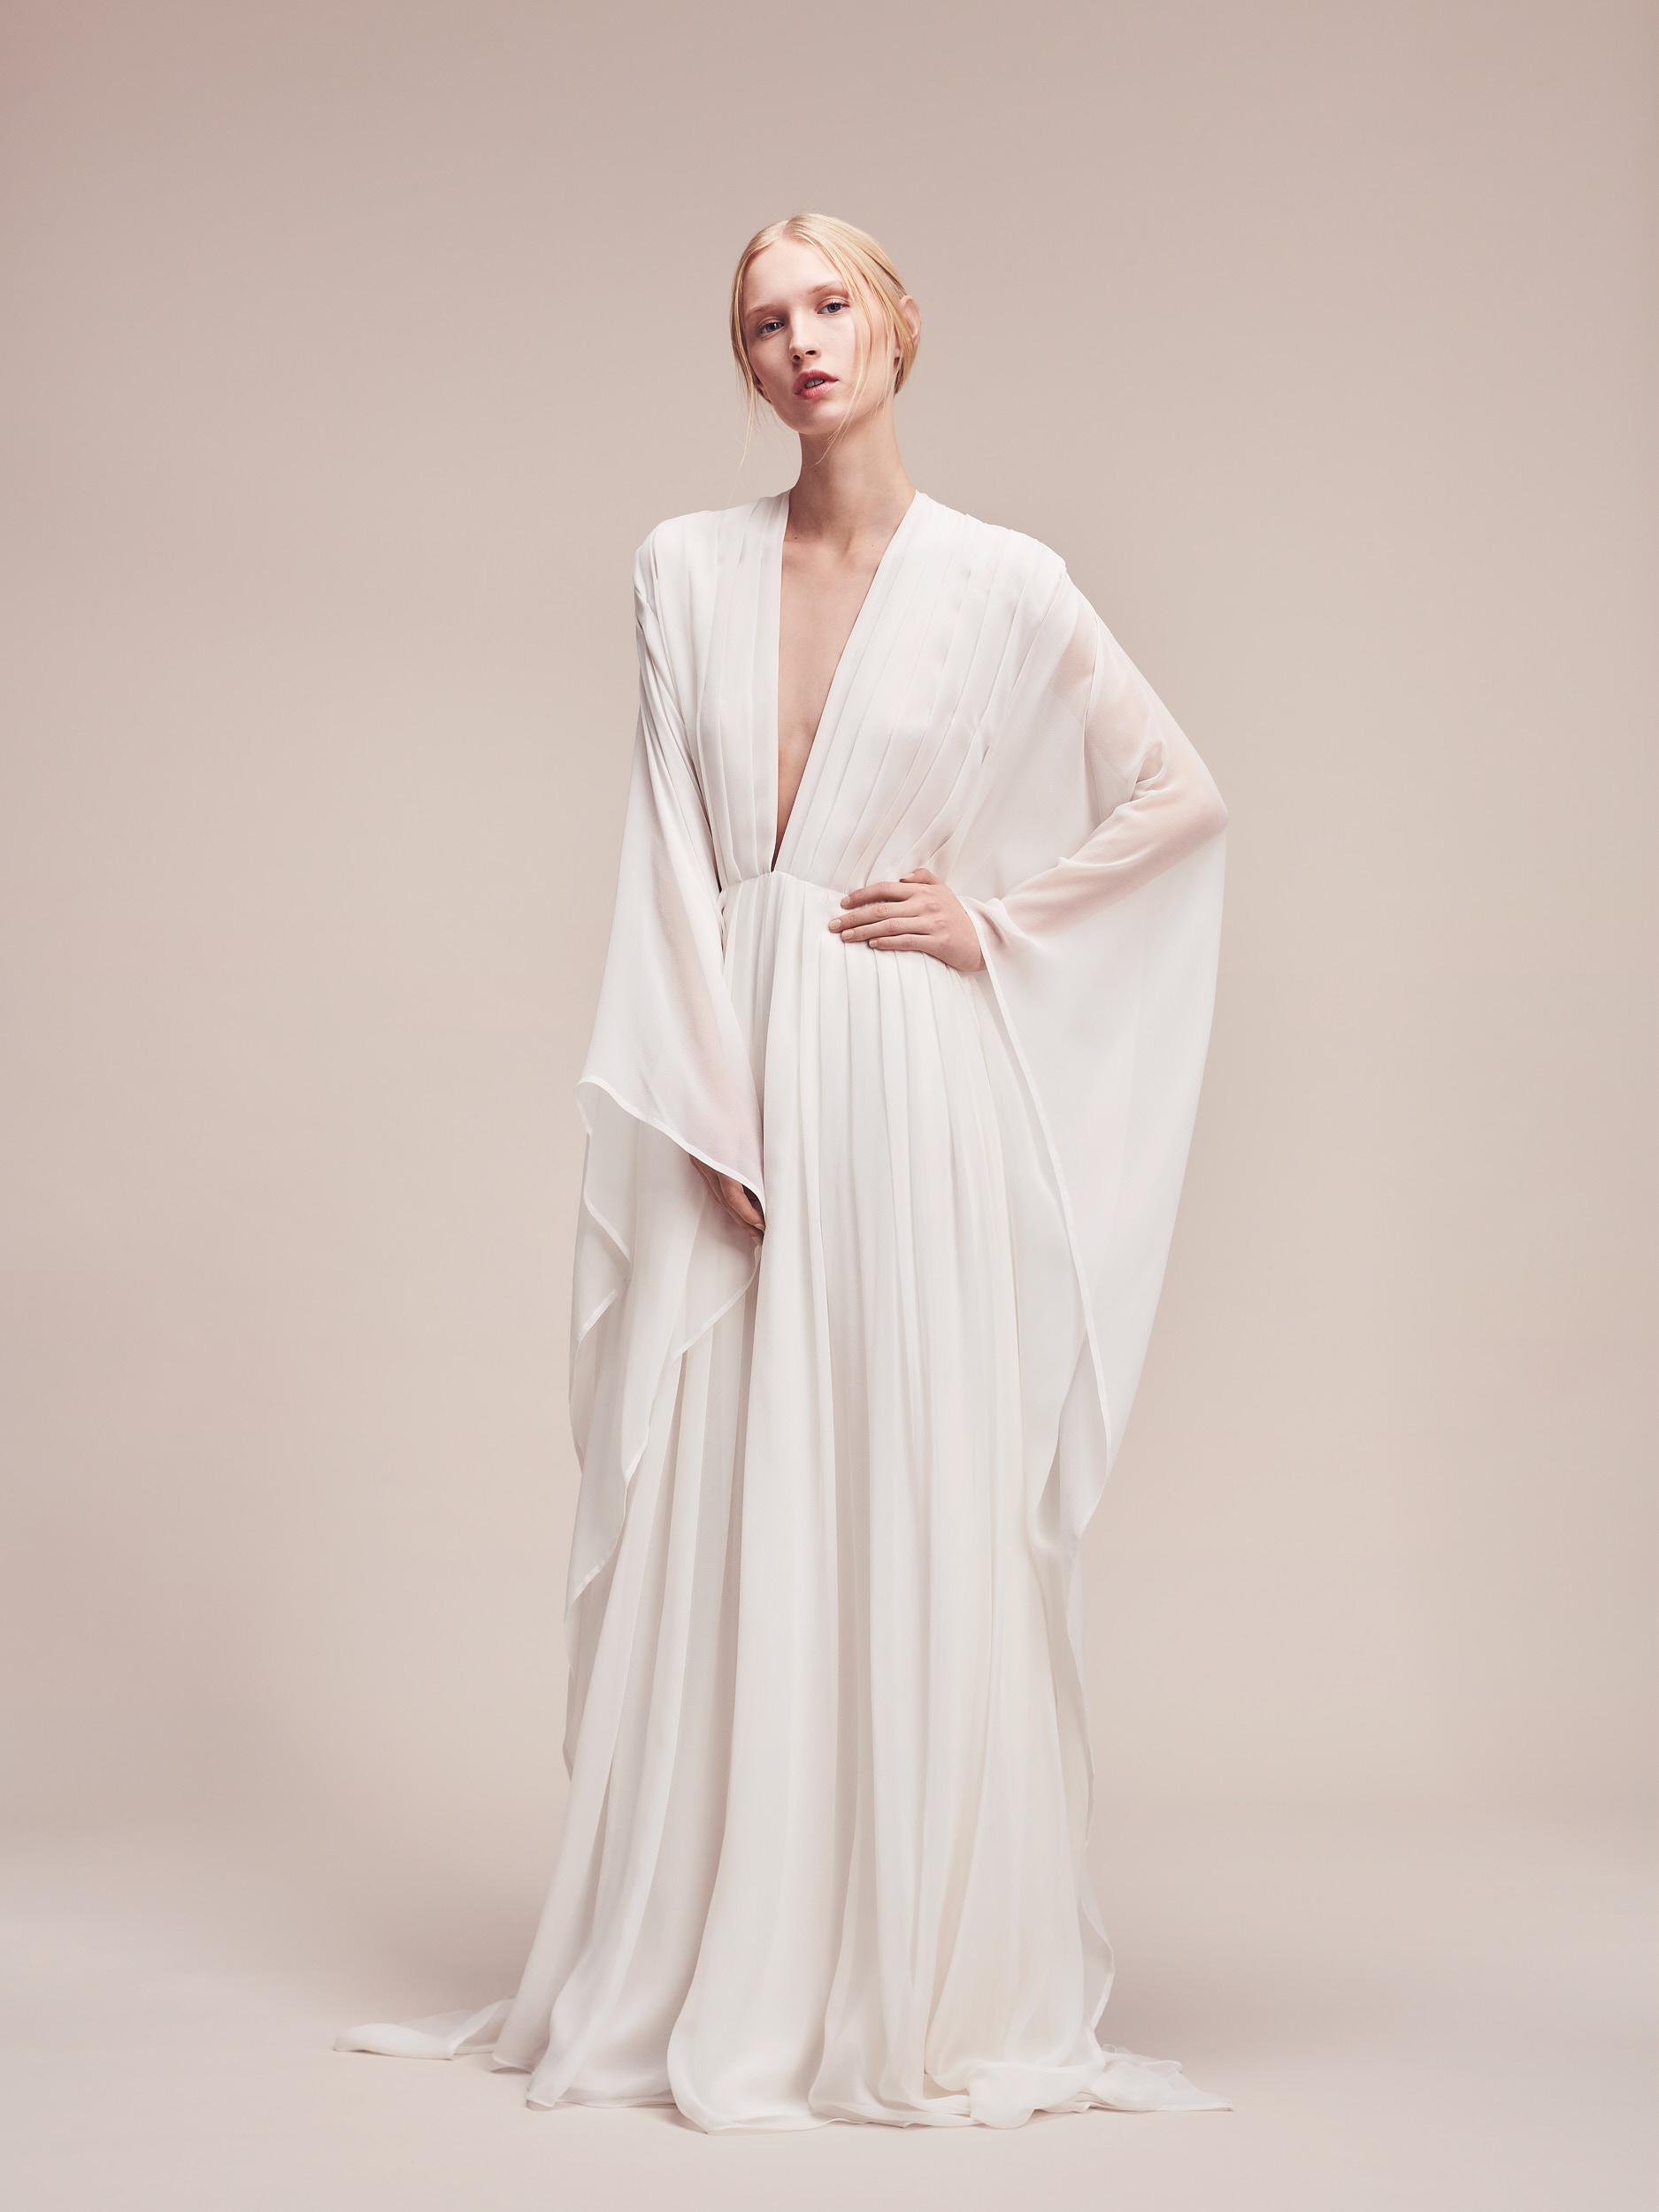 Bridal Tulle Dress Chloé by Magdalena Mayrock Berlin.